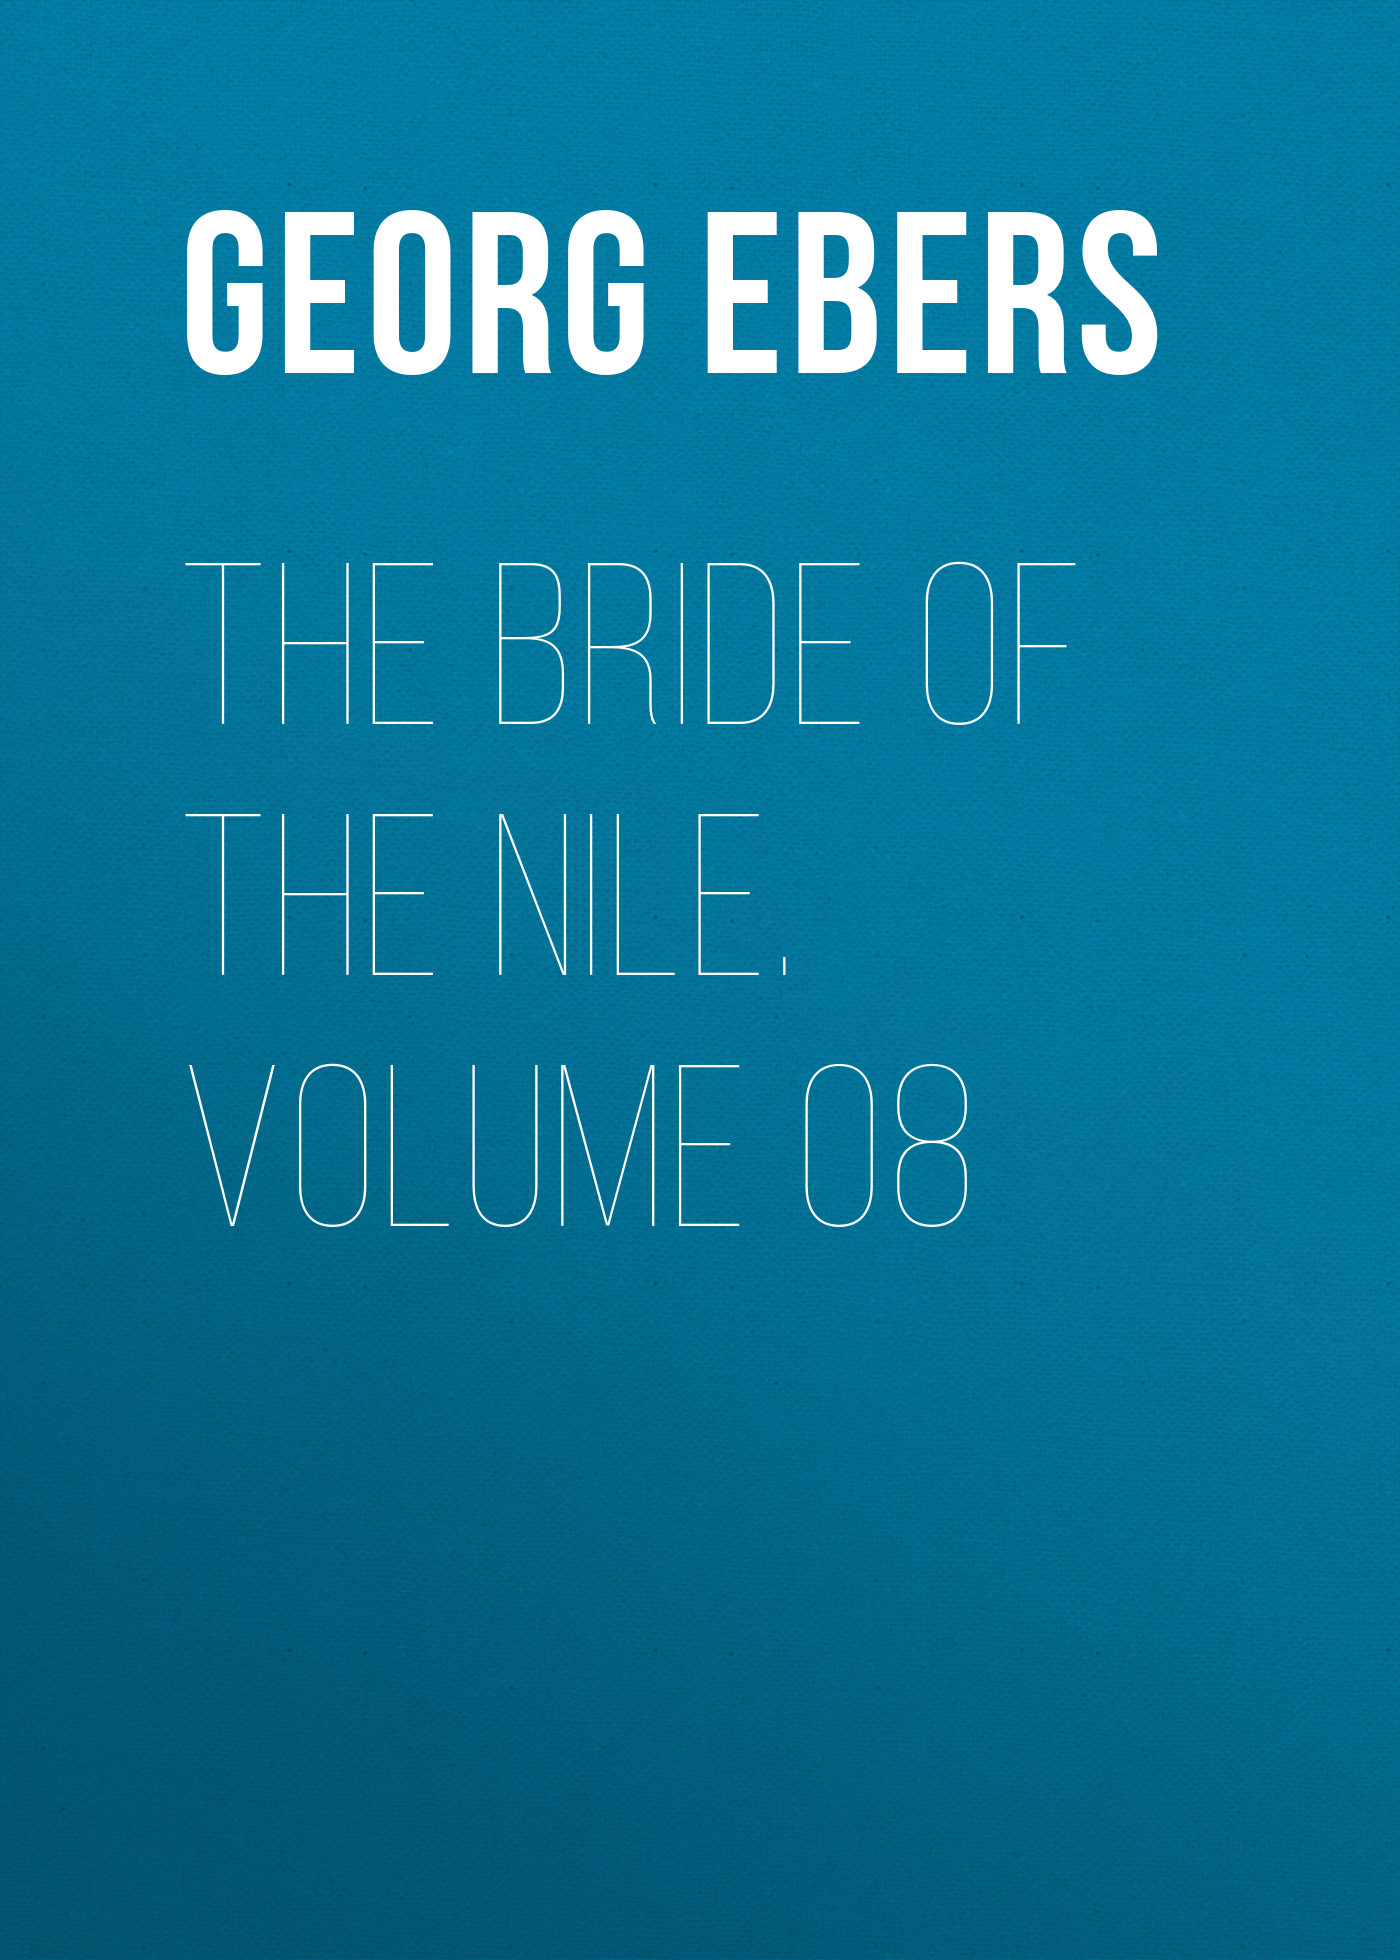 Georg Ebers The Bride of the Nile. Volume 08